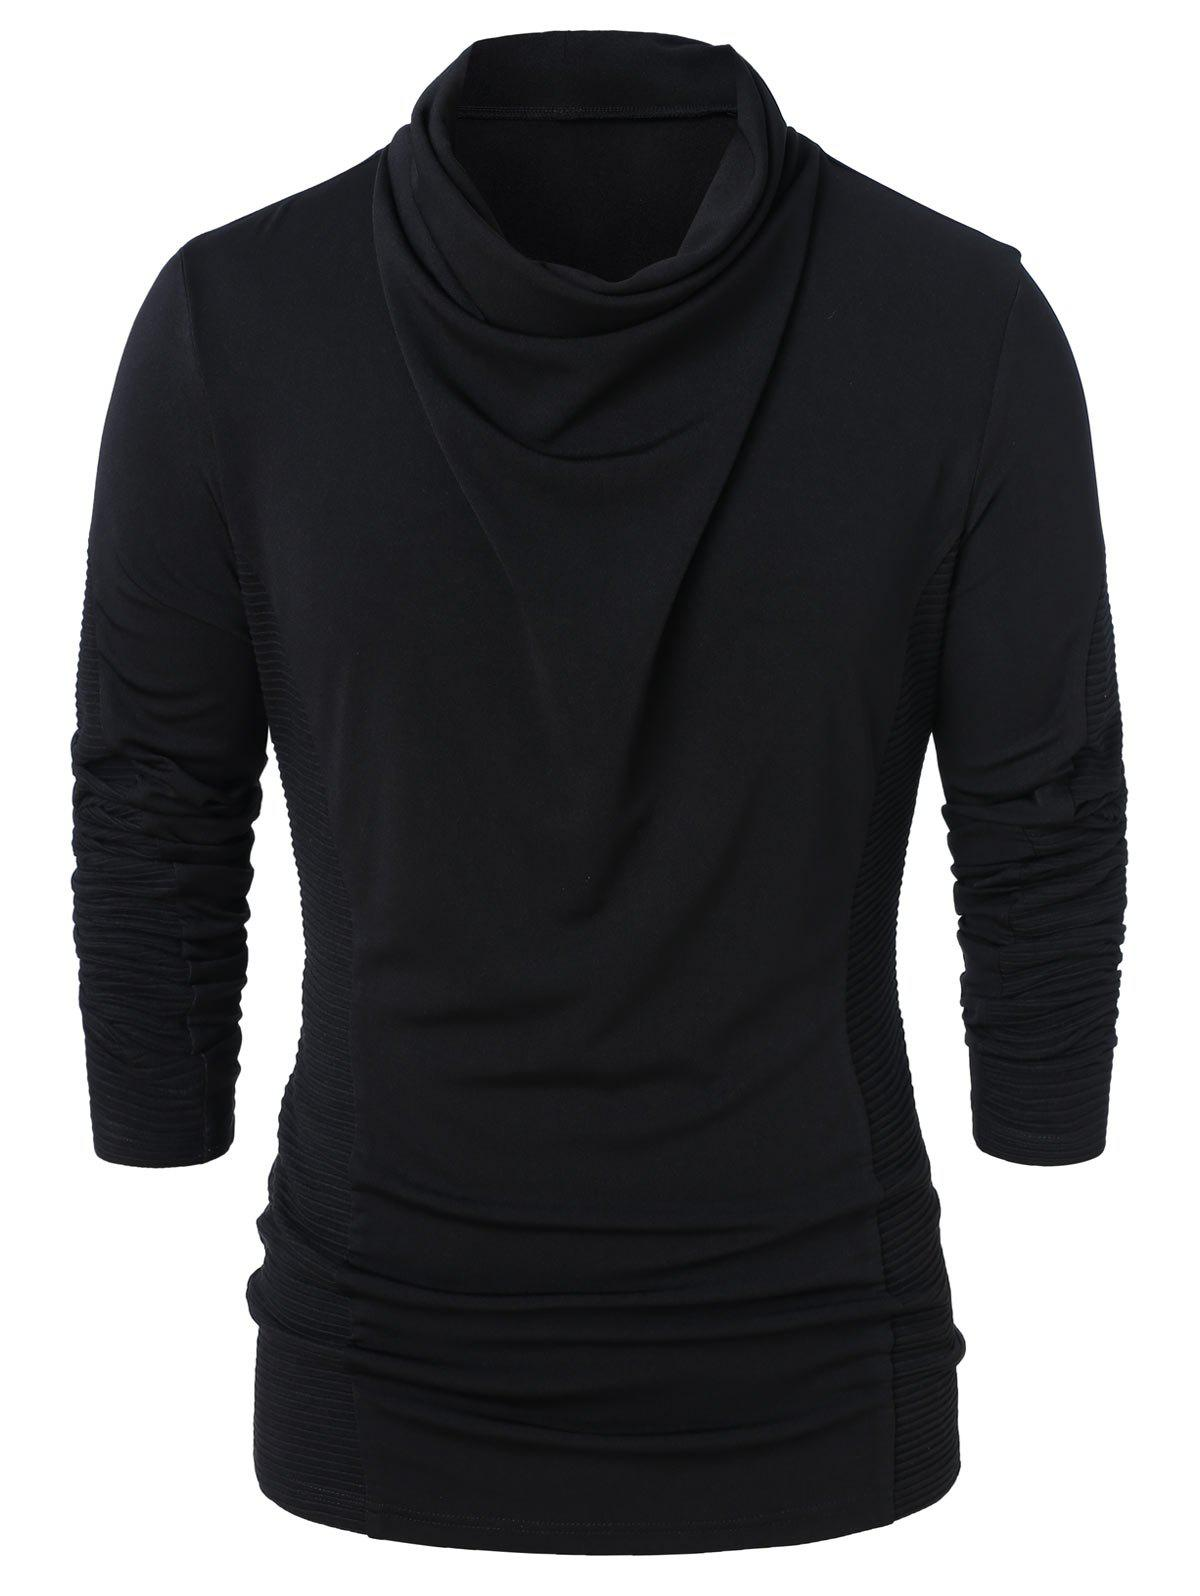 Discount Cowl Neck Long Sleeve Solid Top